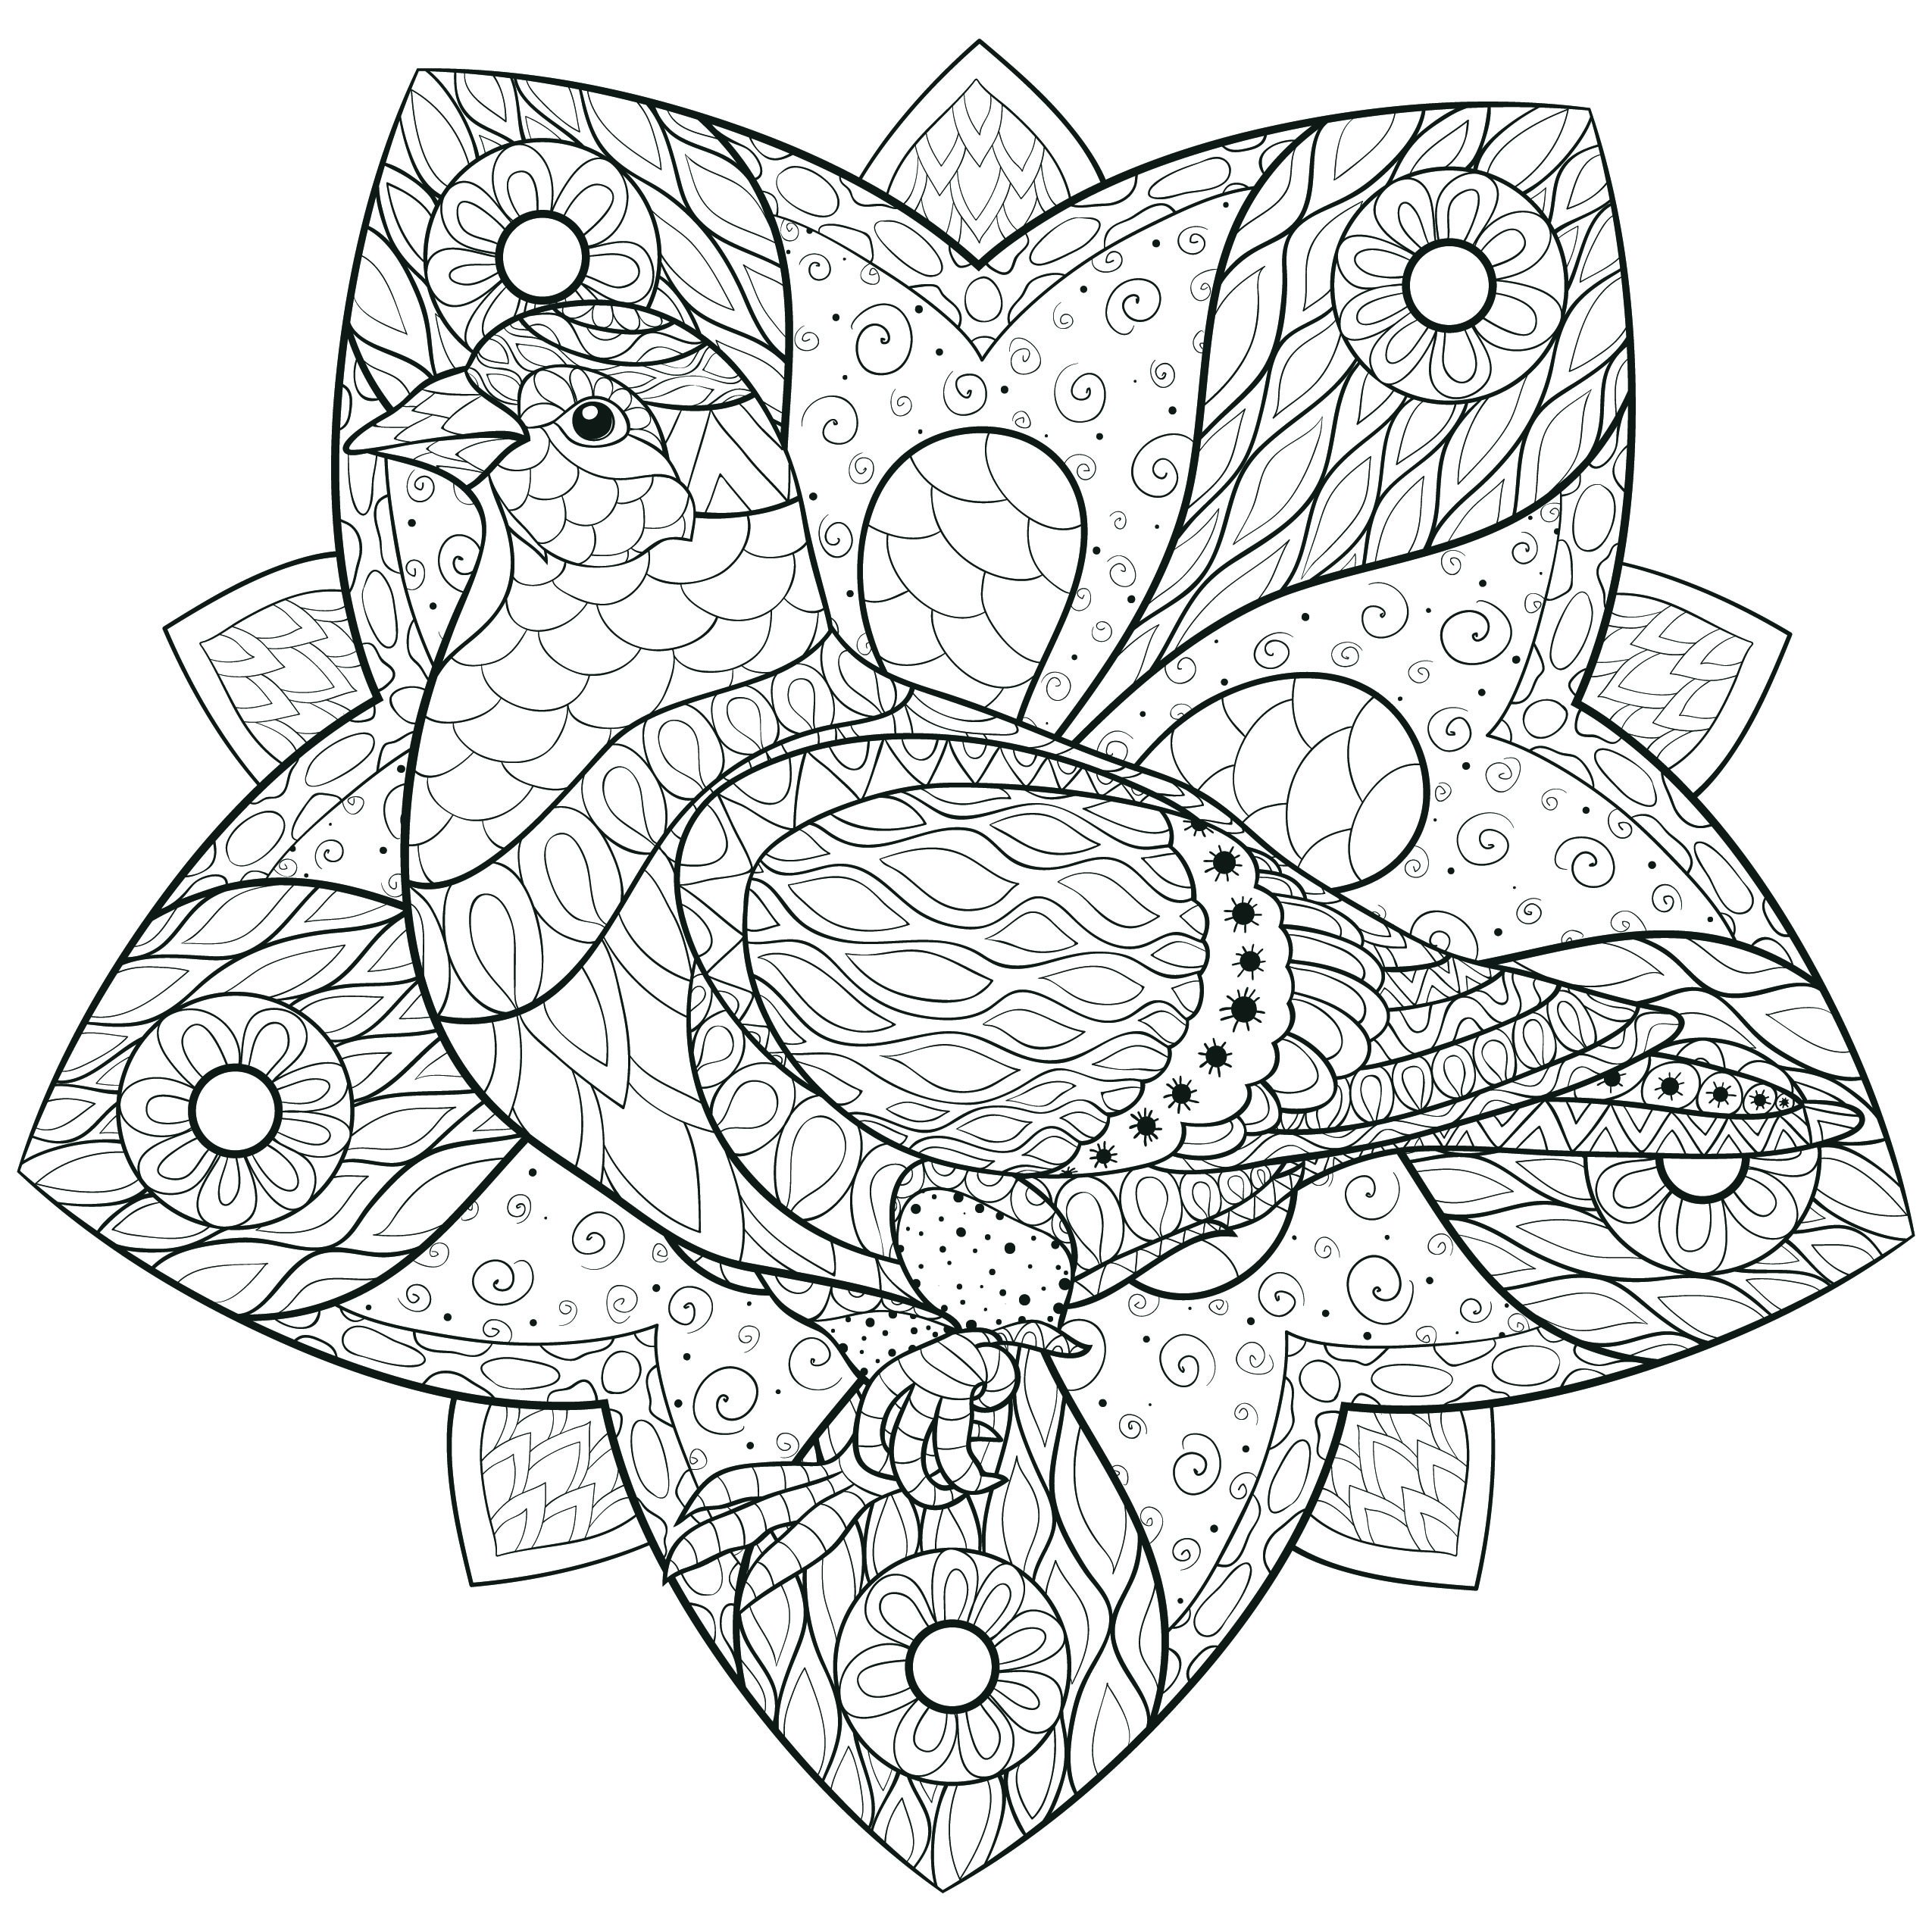 Adult Coloring Books Set.Three Books! Designs from The Sky, Land & Sea. Coloring Books for Adults Relaxation by Creatively Calm Studios